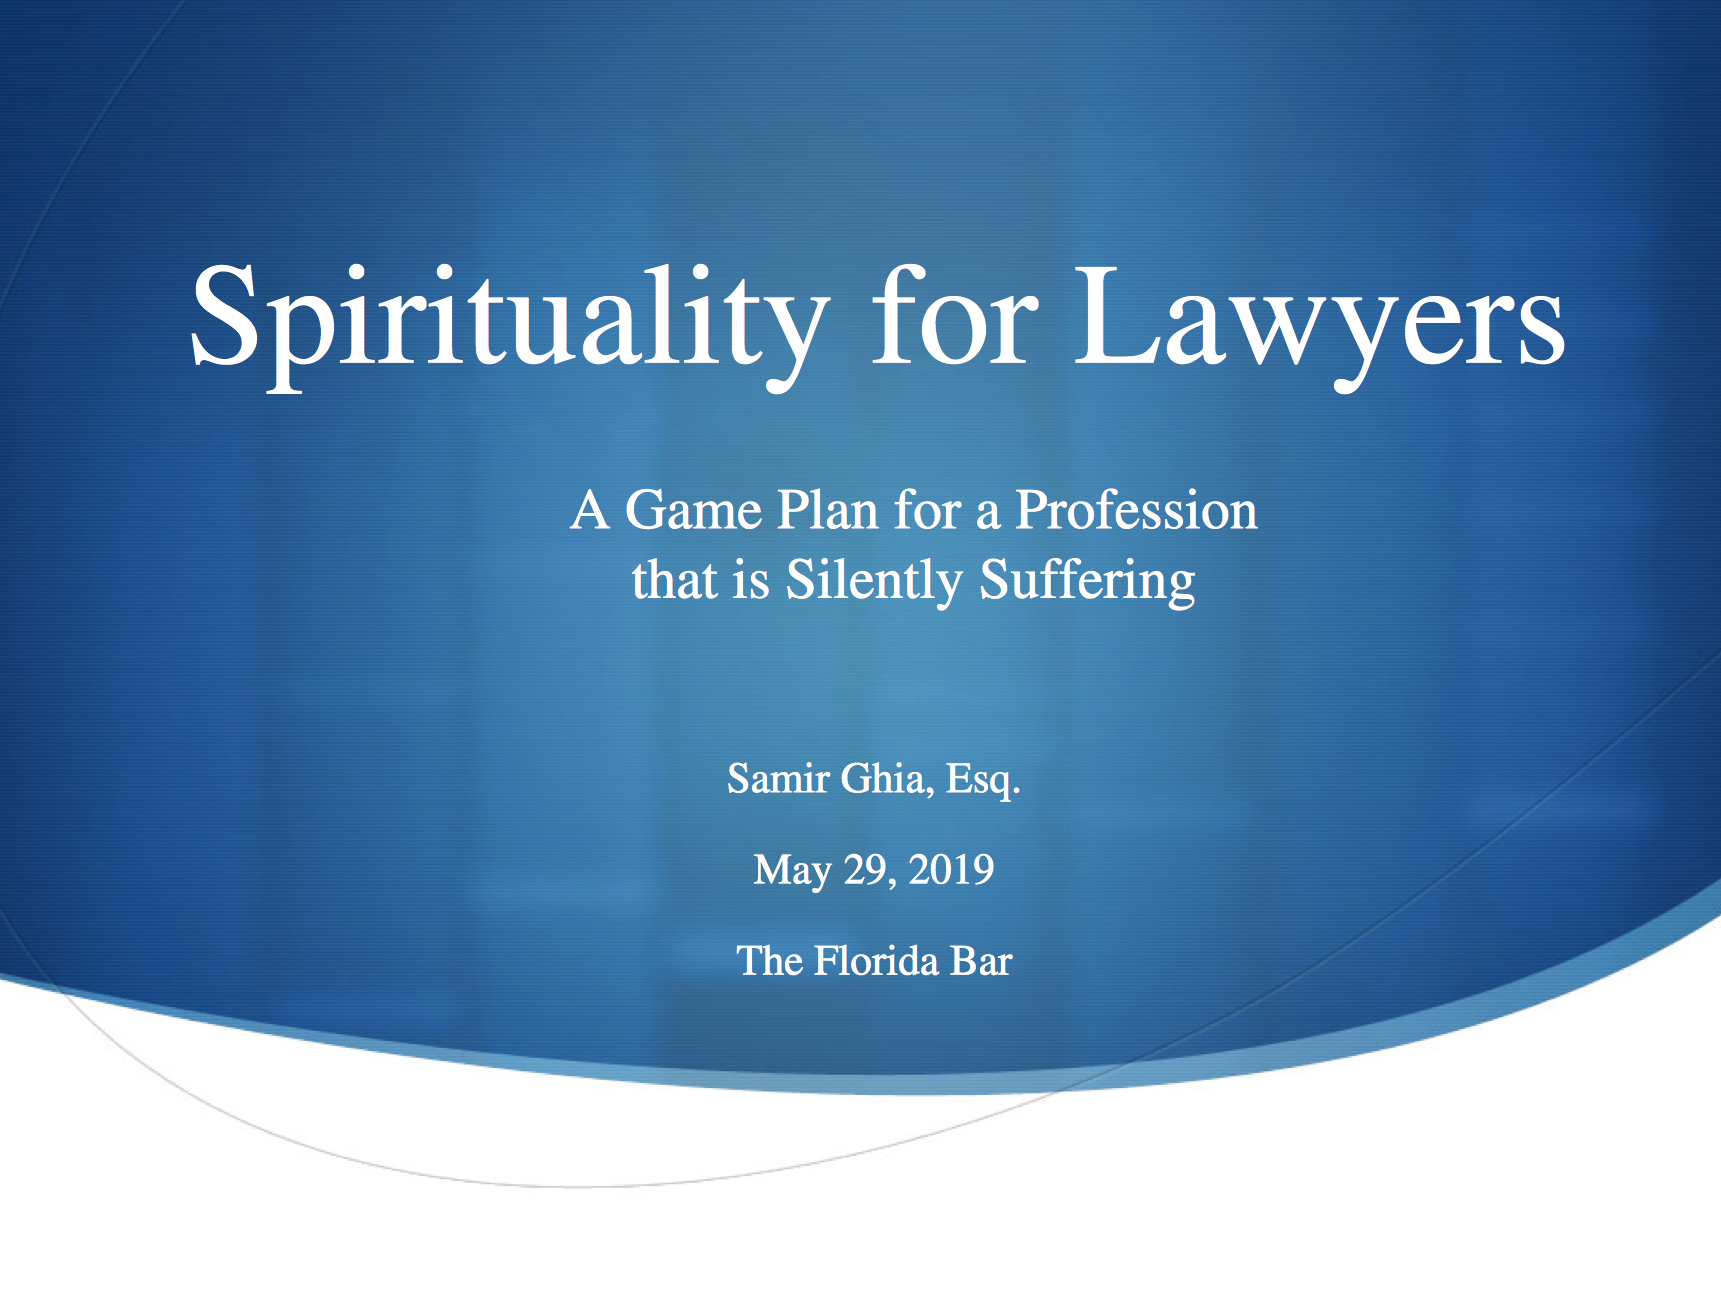 Visual spirituality for lawyers and a game plan for a profession that is silently suffering